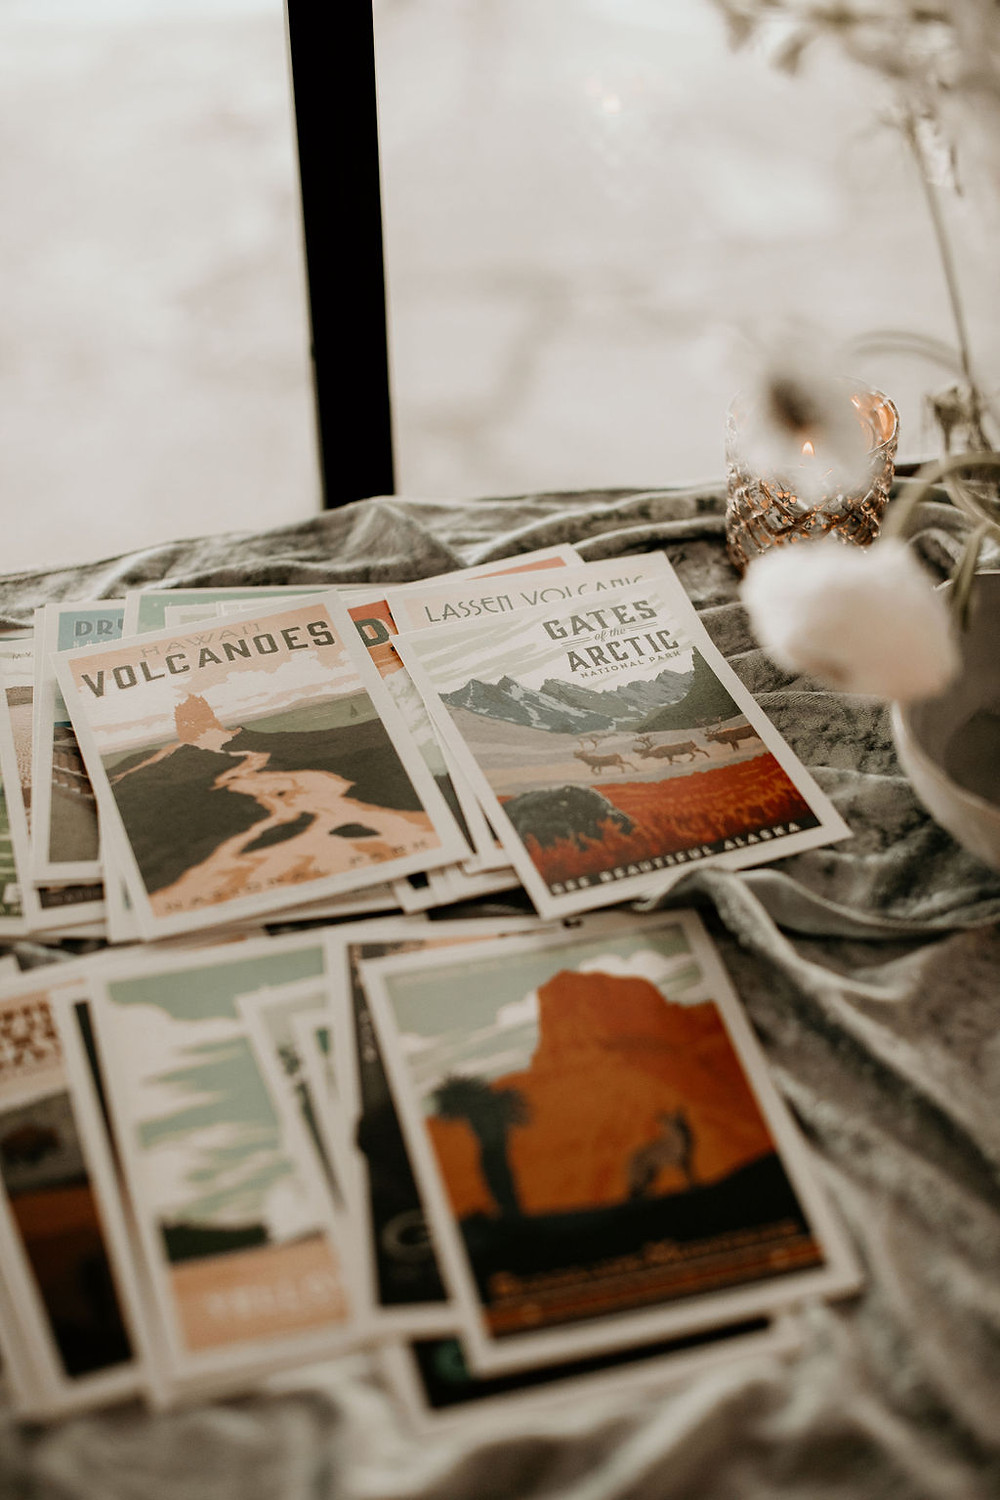 Vintage style post cards on a welcome table at a wedding.